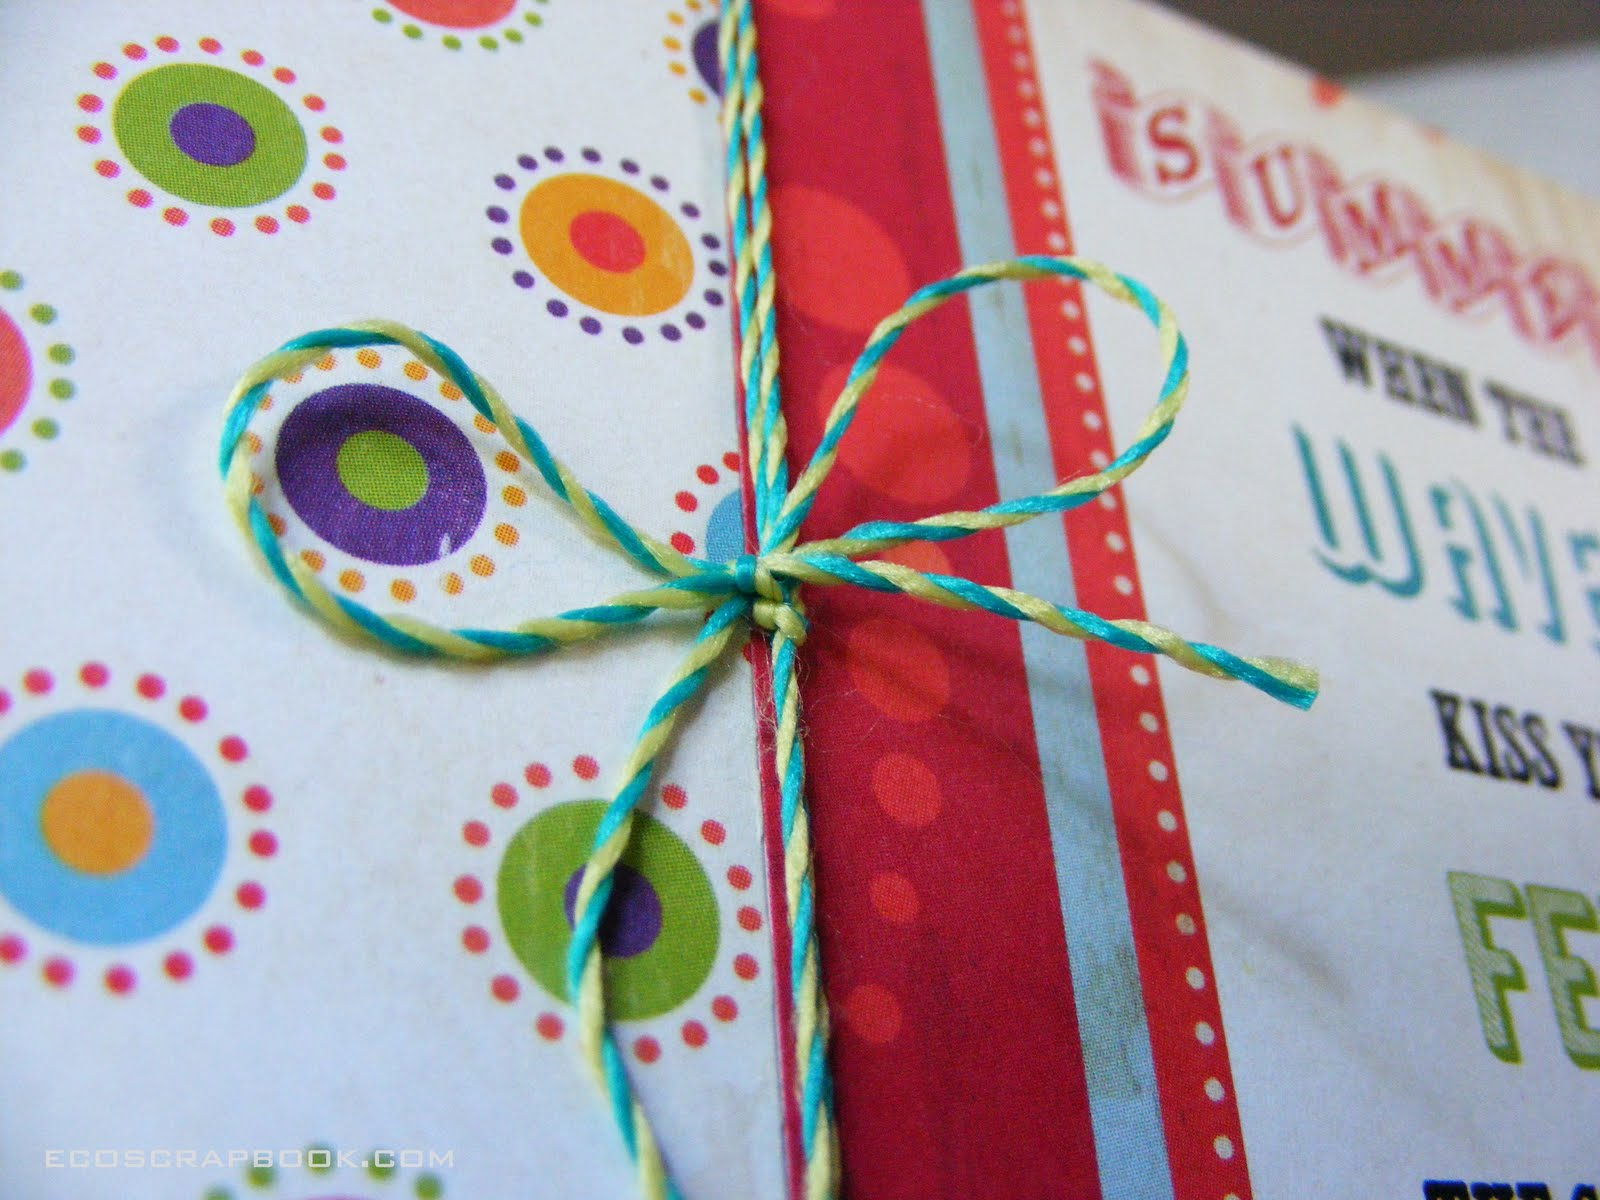 Recycle old greeting cards into party invitations ecoscrapbook the twine is by pink paislee a scrapbook company that offers cardstock printed with soy based ink m4hsunfo